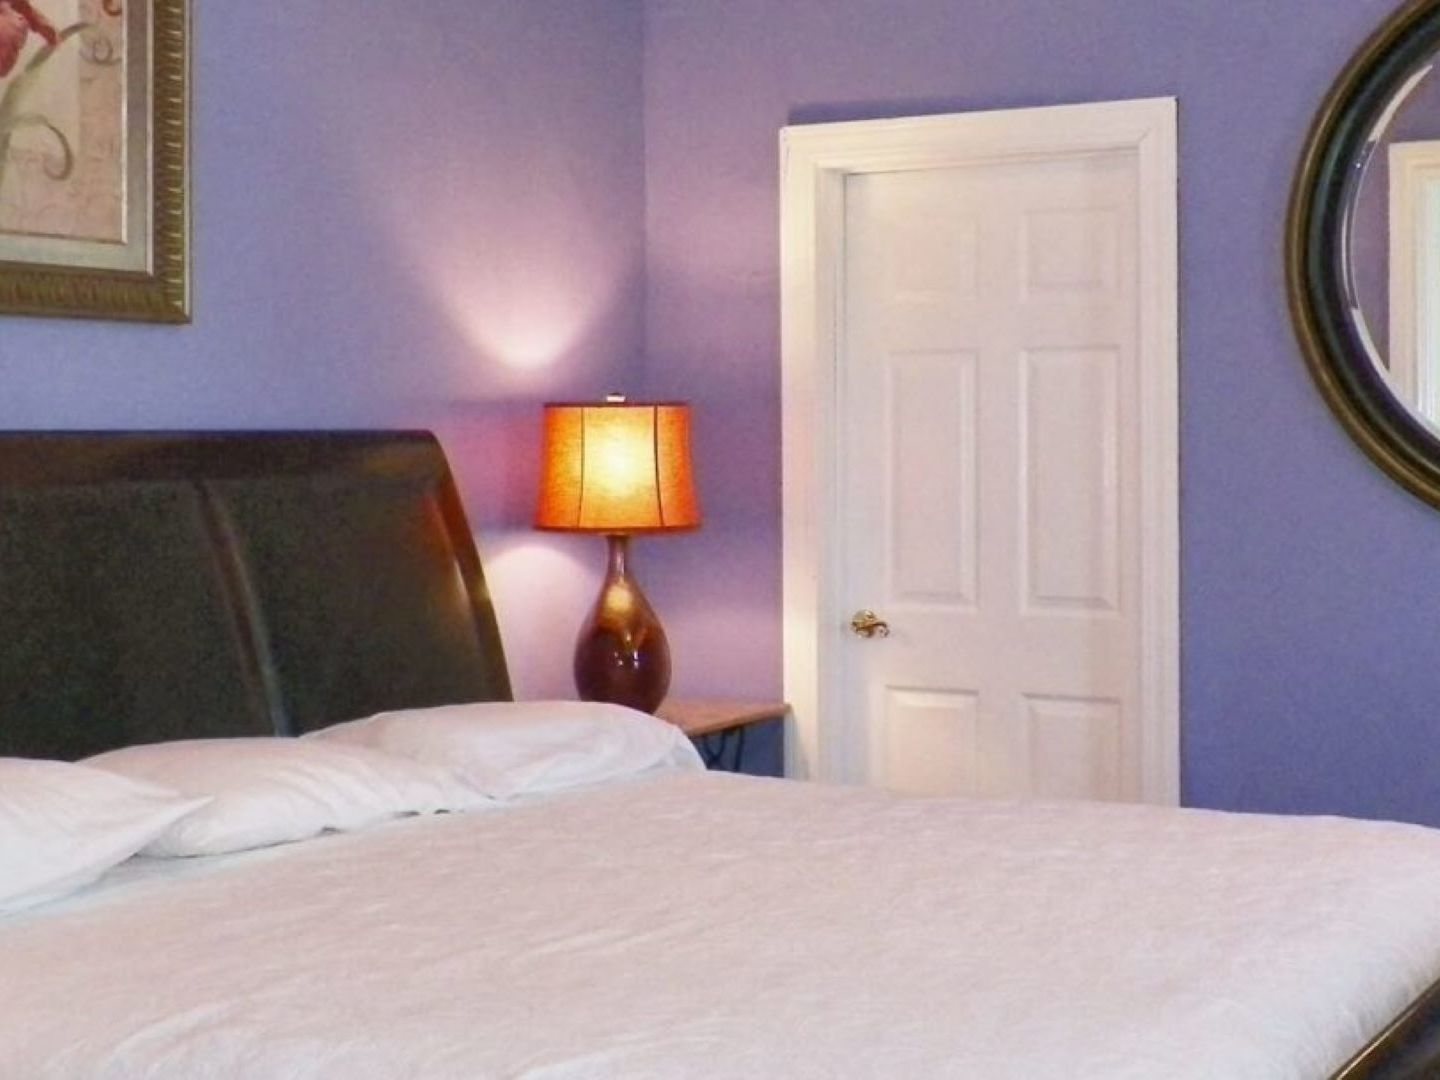 A bedroom with a large bed in a room at Blueberry Cove Inn.